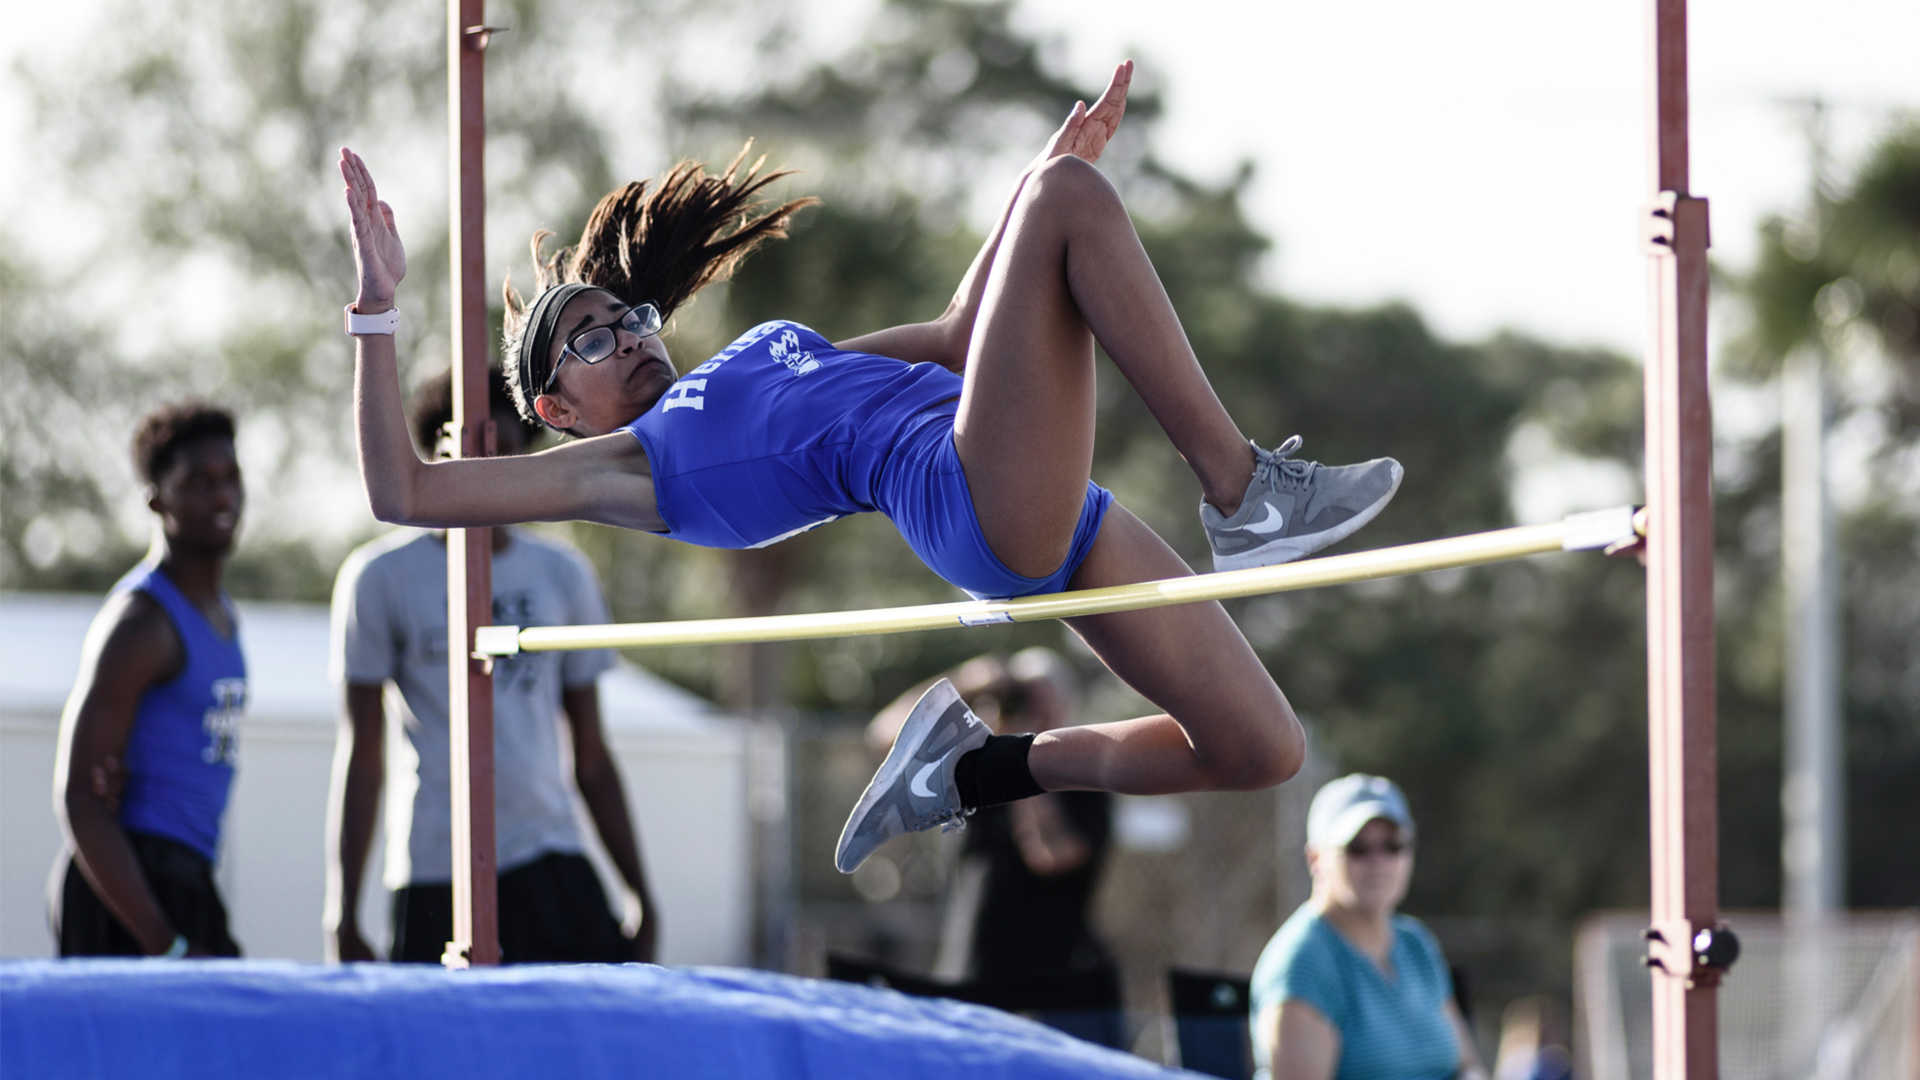 Featured image-How I Got the Shot-The High Jump